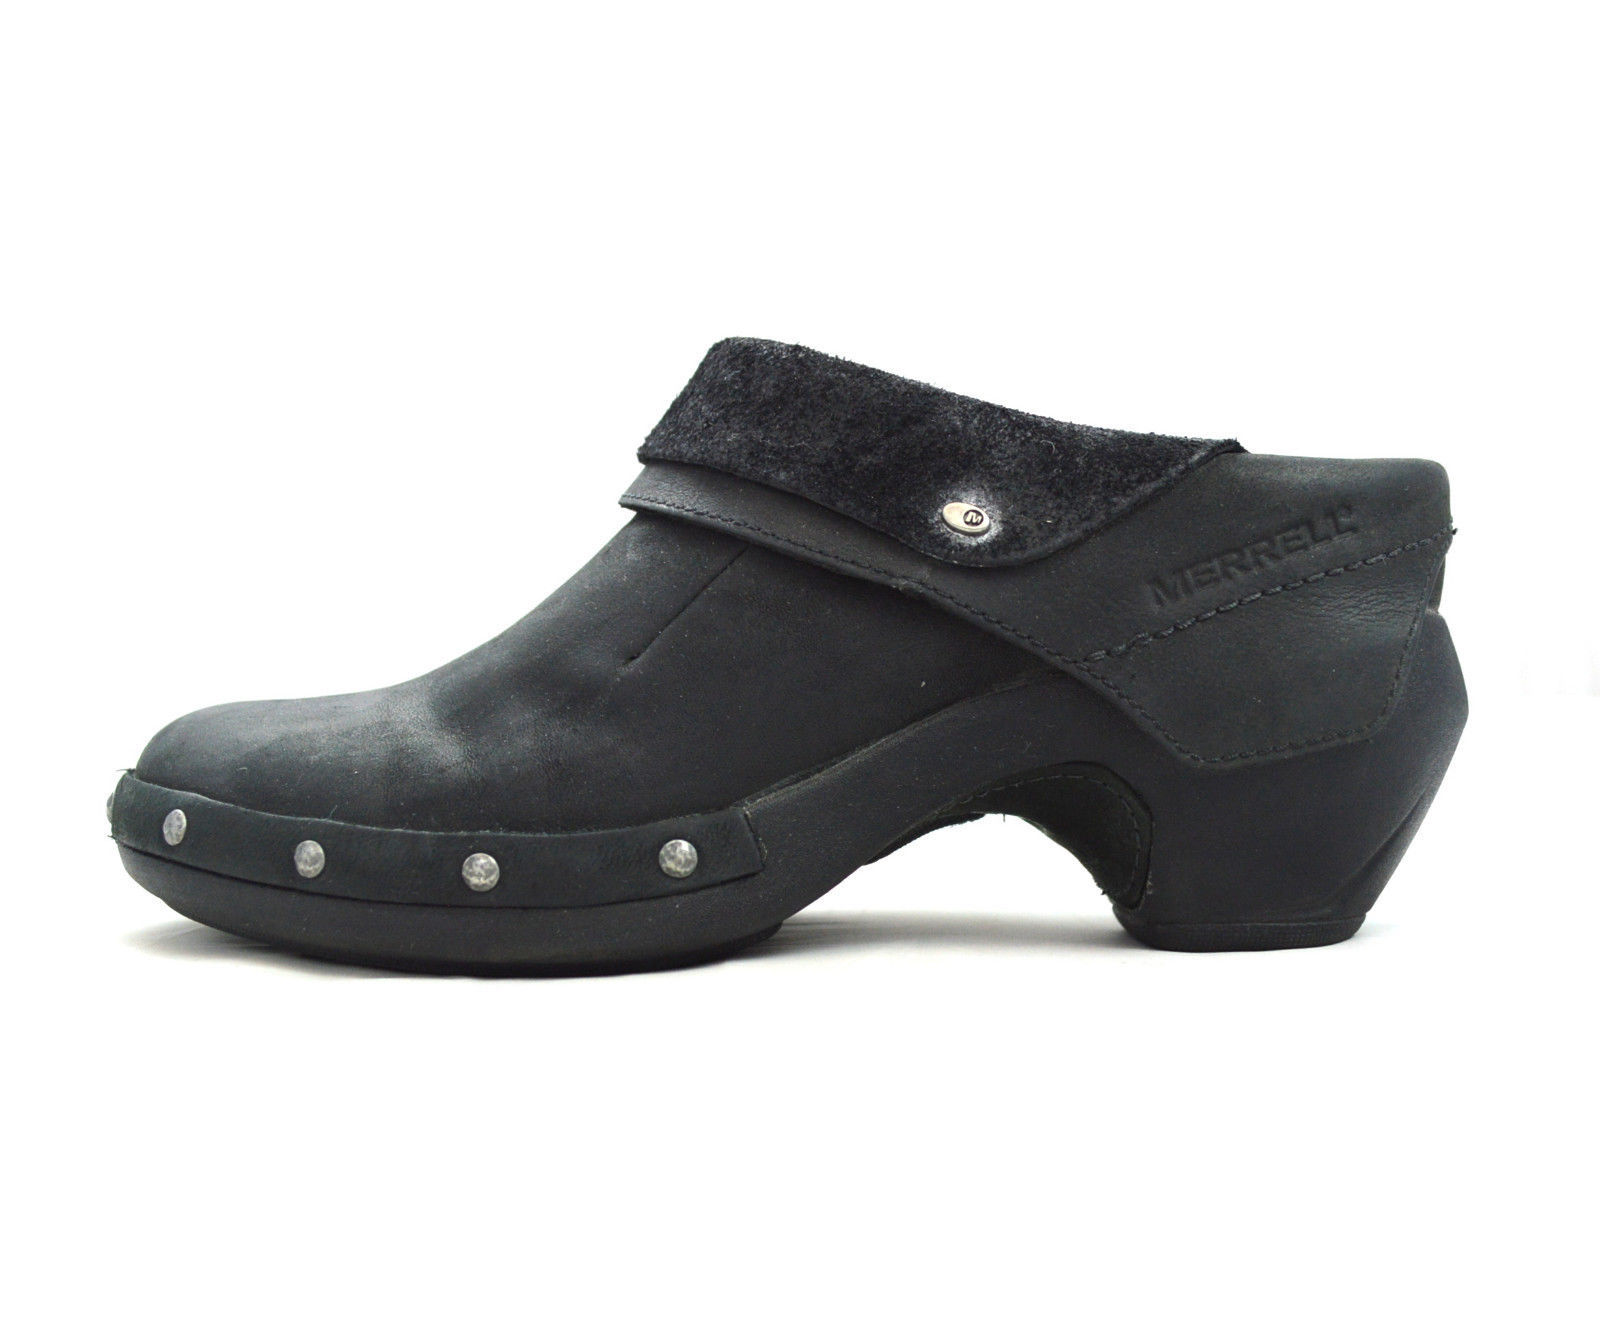 Smooth Black Nubuck Leather MERRELL LUXE WRAP Clog Ankle Booties Pirate Shoes 6